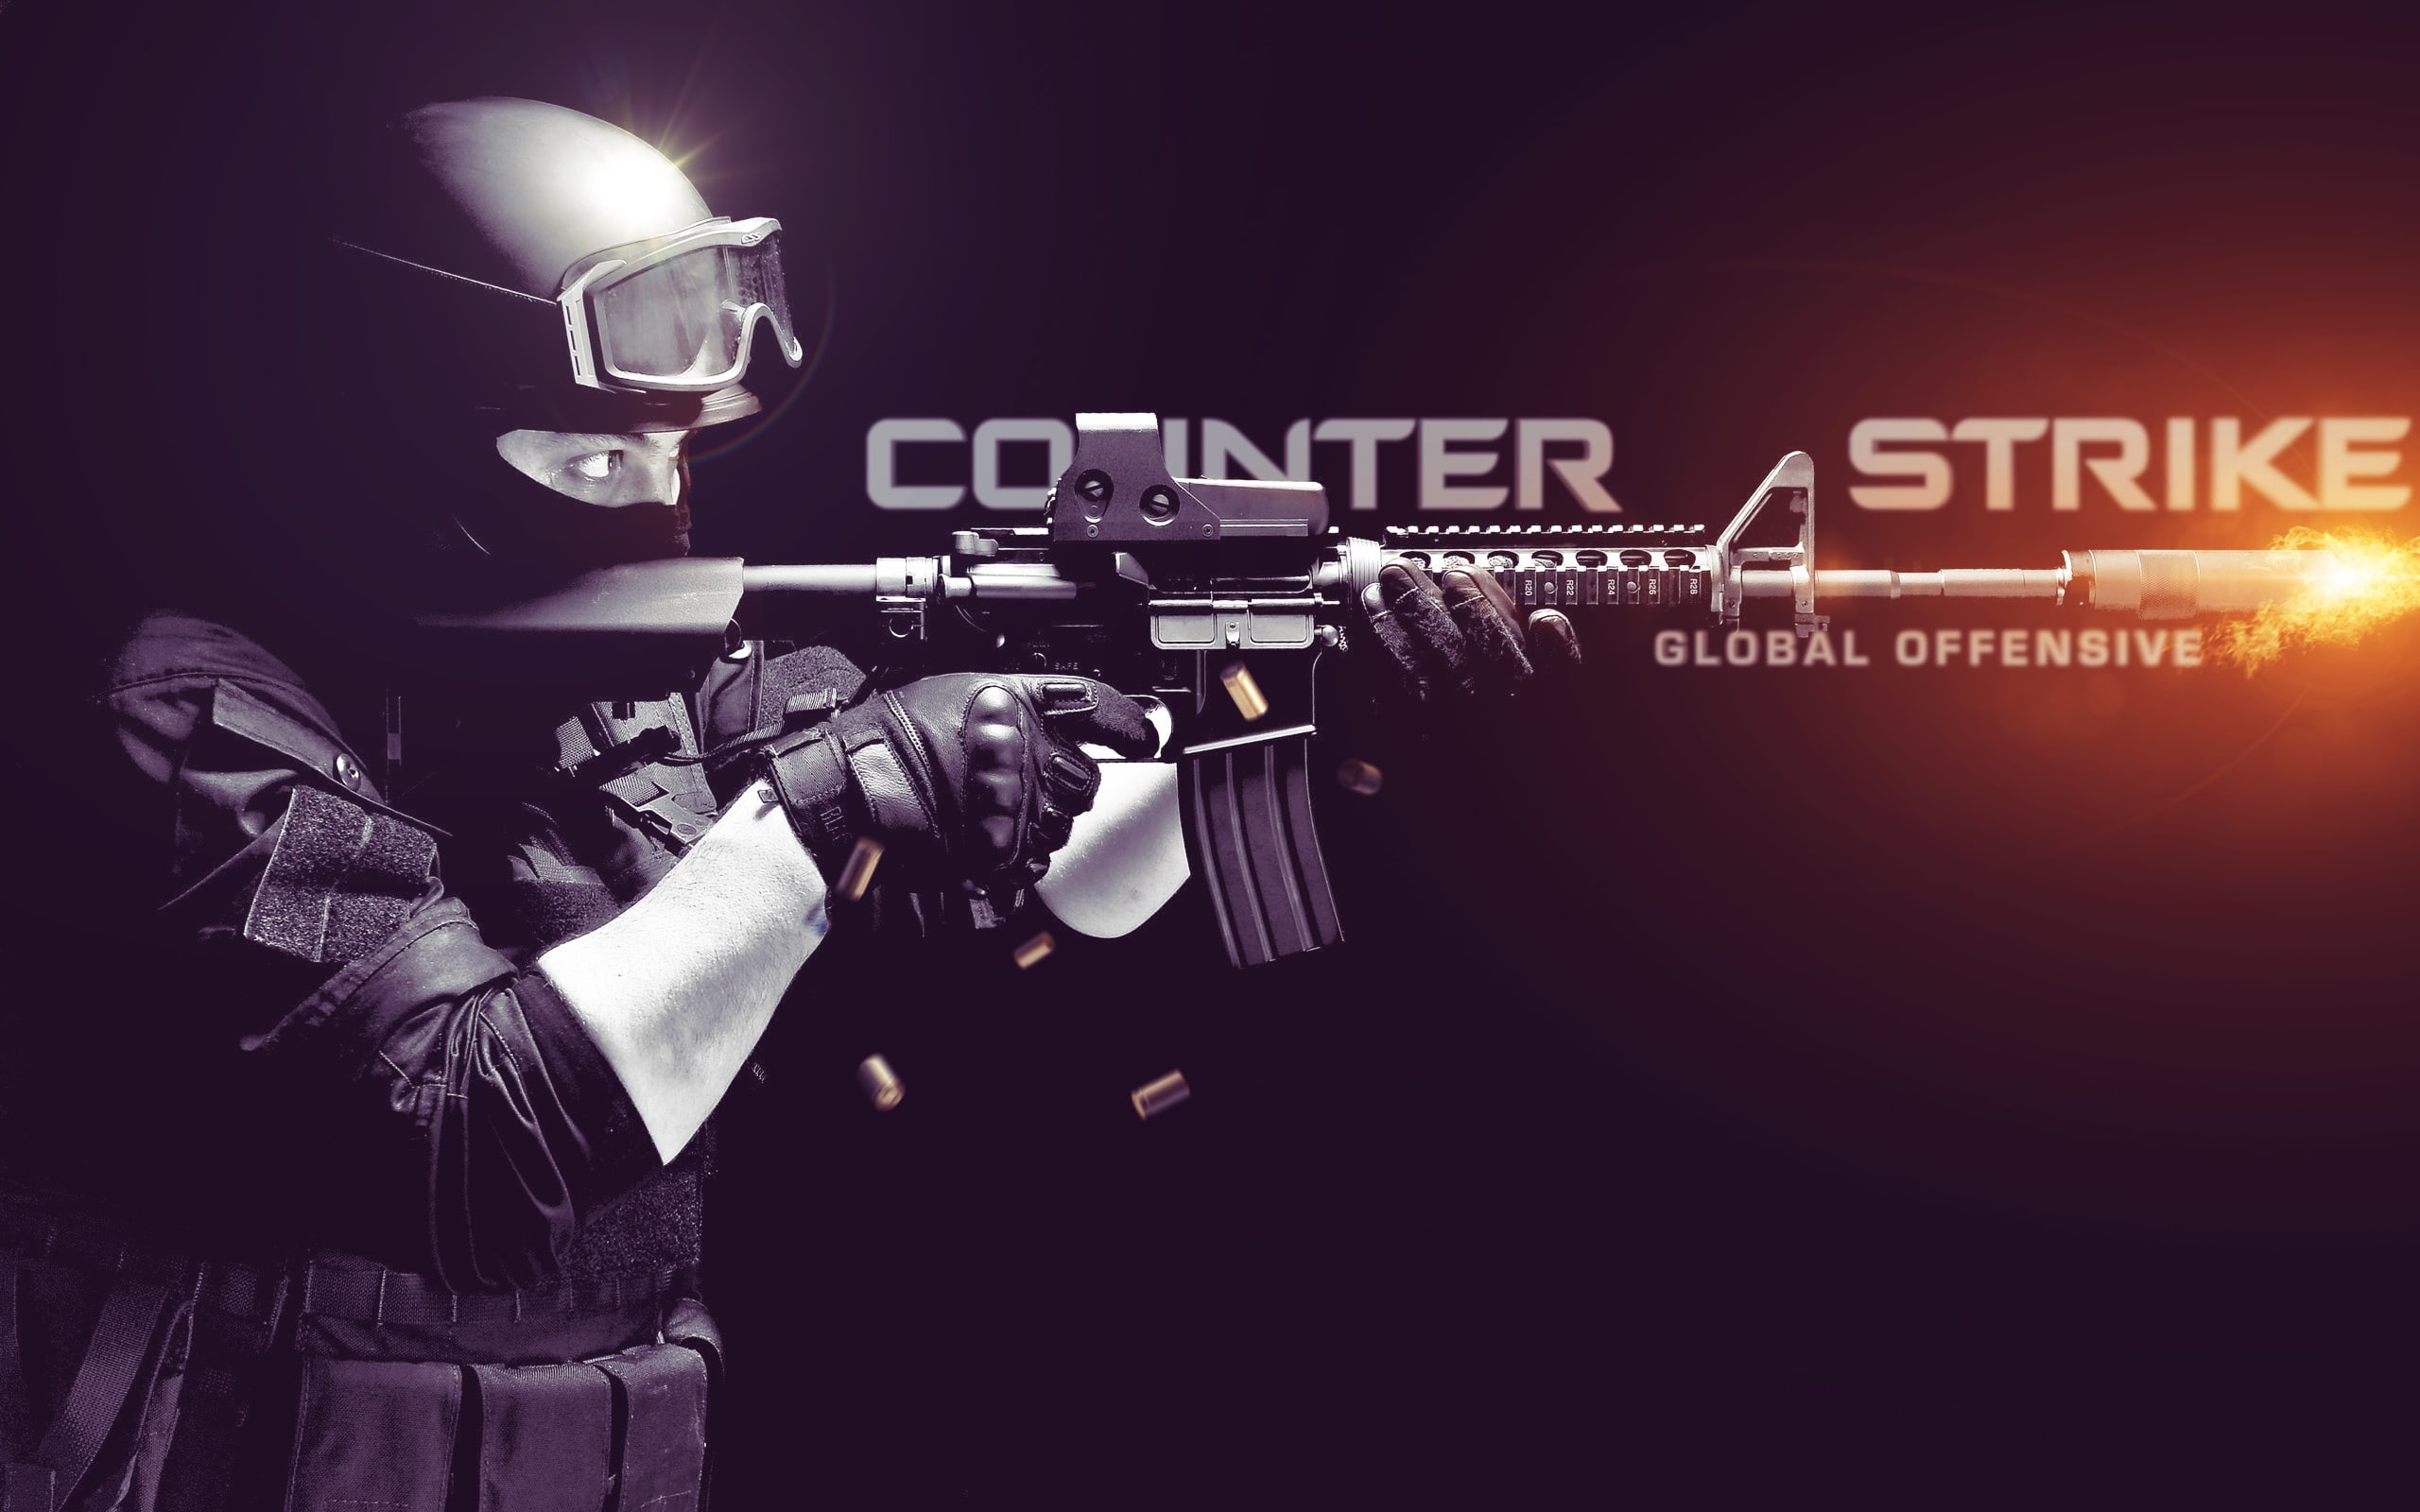 Counter-Strike: Global Offensive widescreen wallpapers